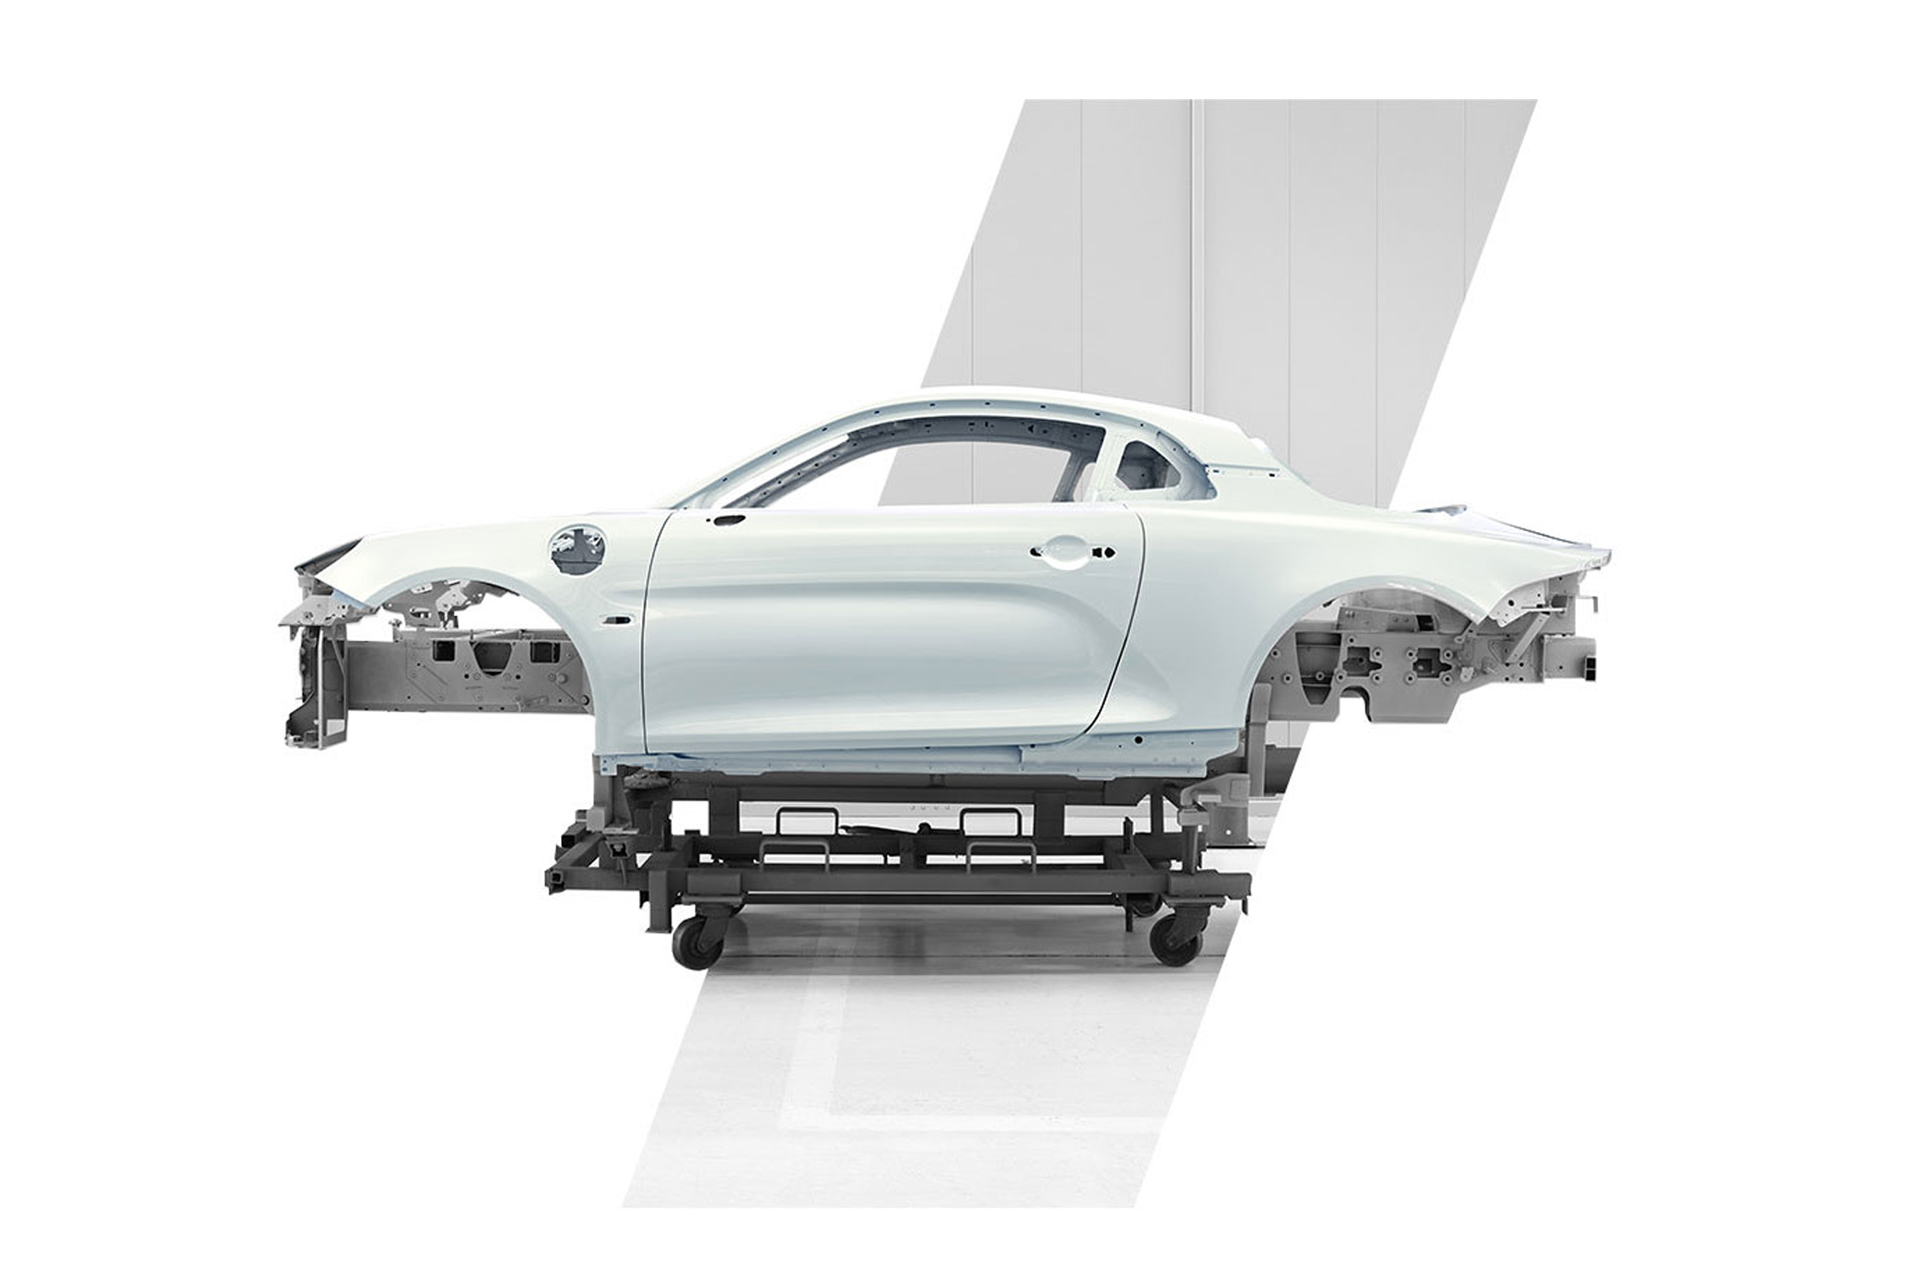 Alpine A110S - 2019 - chassis / châssis - side view